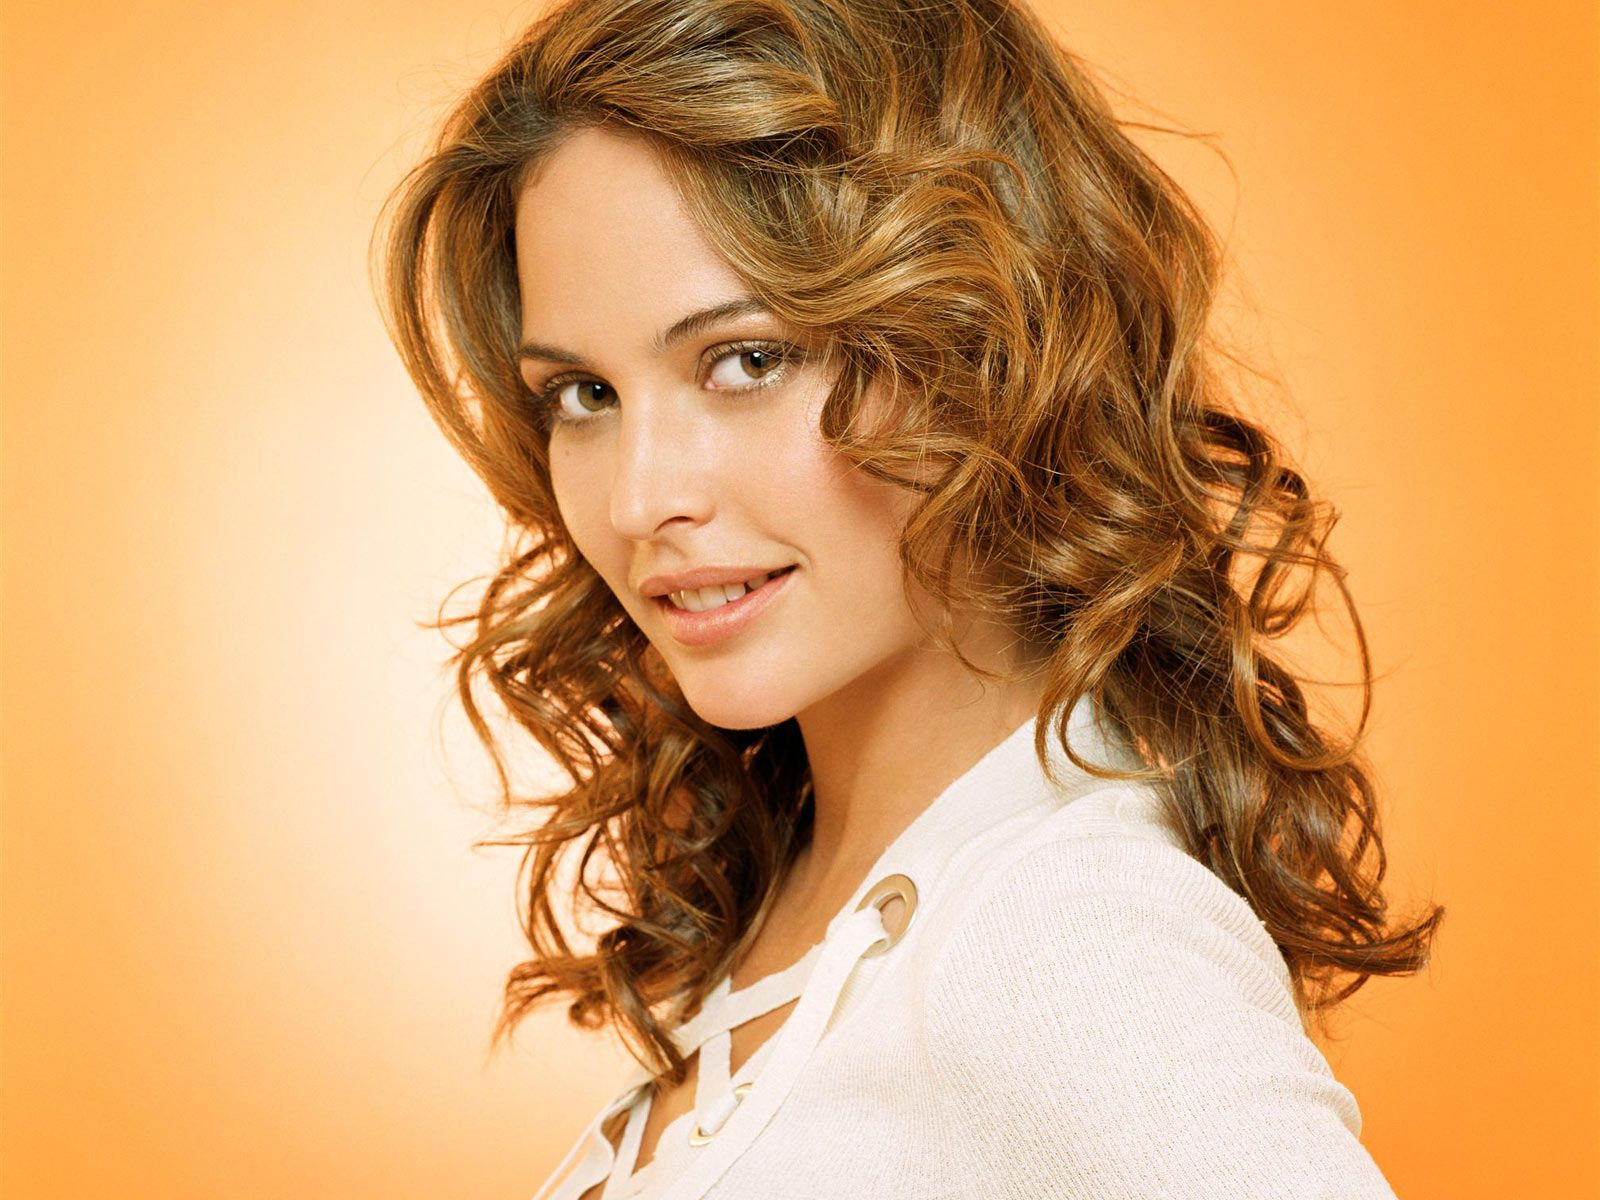 http://2.bp.blogspot.com/-nTMIejvyTLI/TdnHUtl_9dI/AAAAAAAAADU/hl-n0KocVUY/s1600/girl-on-orange-wallpapers_11942_1600x1200.jpg